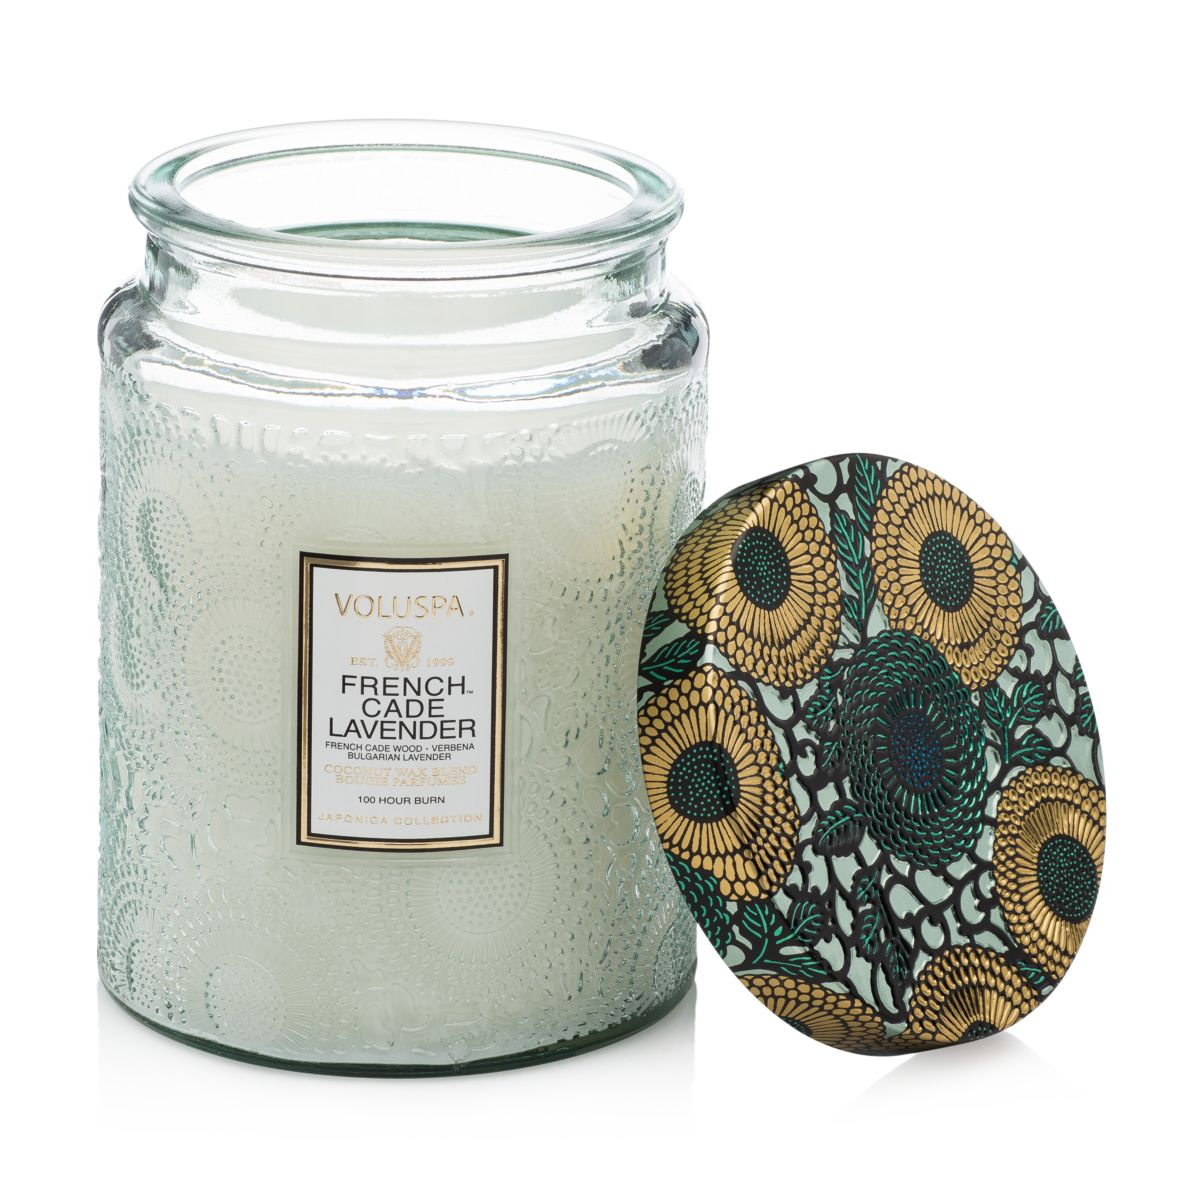 Japonica French Cade & Lavender Large Glass Candle by Voluspa